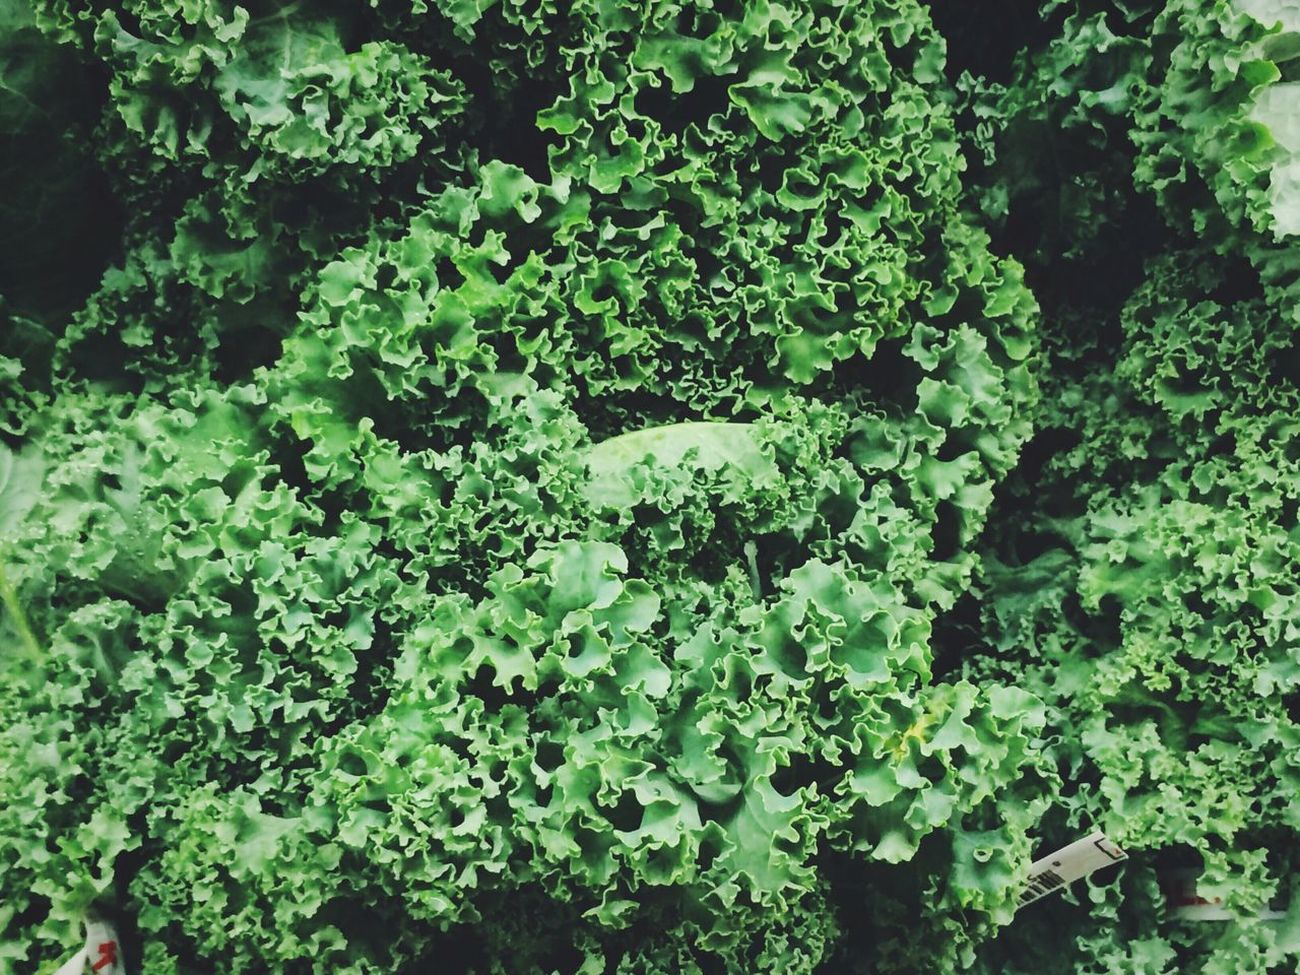 All hail kale: In celebration of Pantone's forecasted color of 2017, we've curated a collection devoted to this hearty vegetable and glorious green hue! 💚 http://eyeem.ai/2eVR6zV